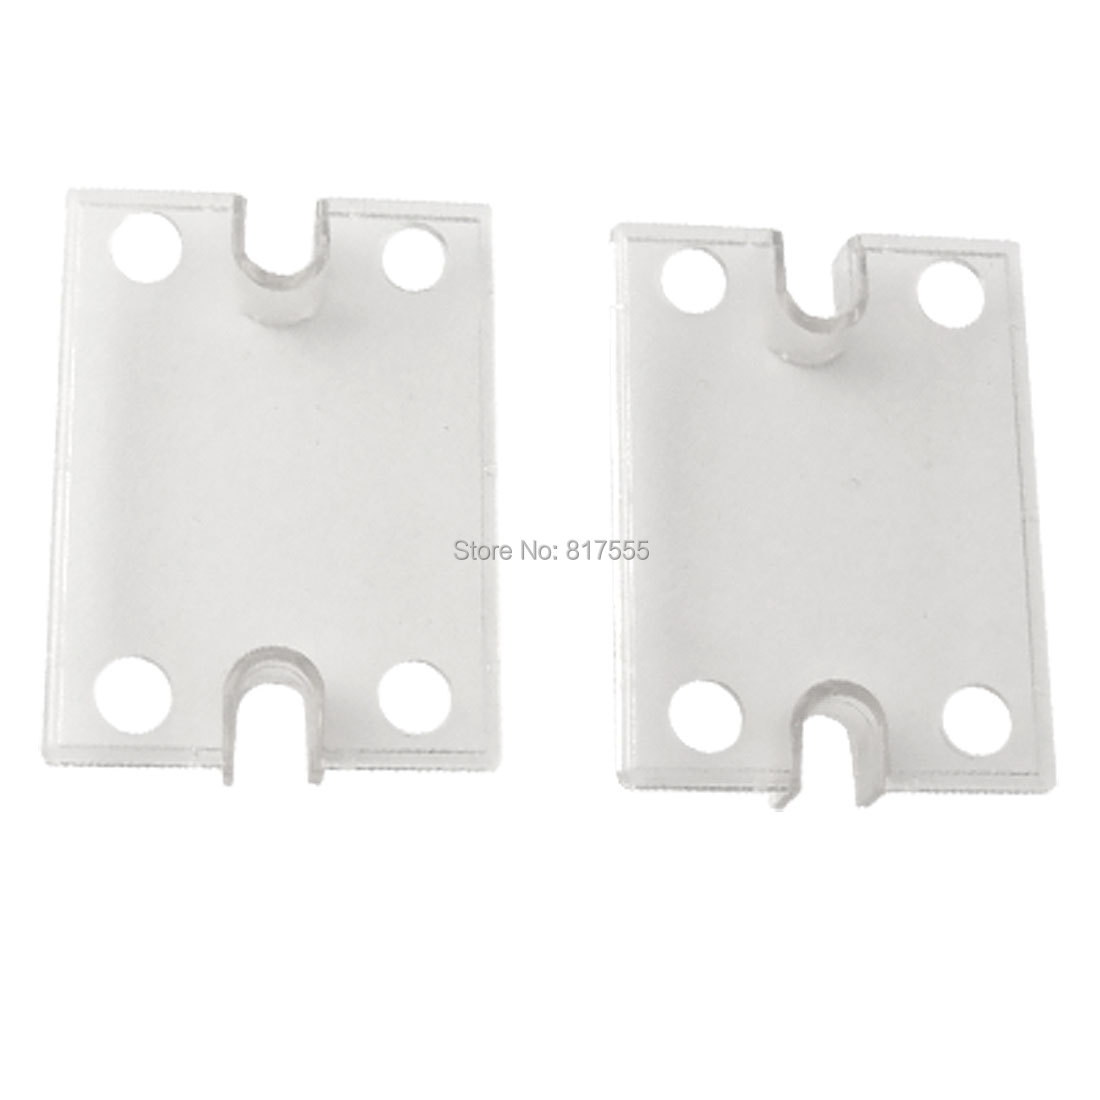 Single Phase Solid State Relay SSR Safety Cover Clear Plastic Covers x 2pcs<br><br>Aliexpress